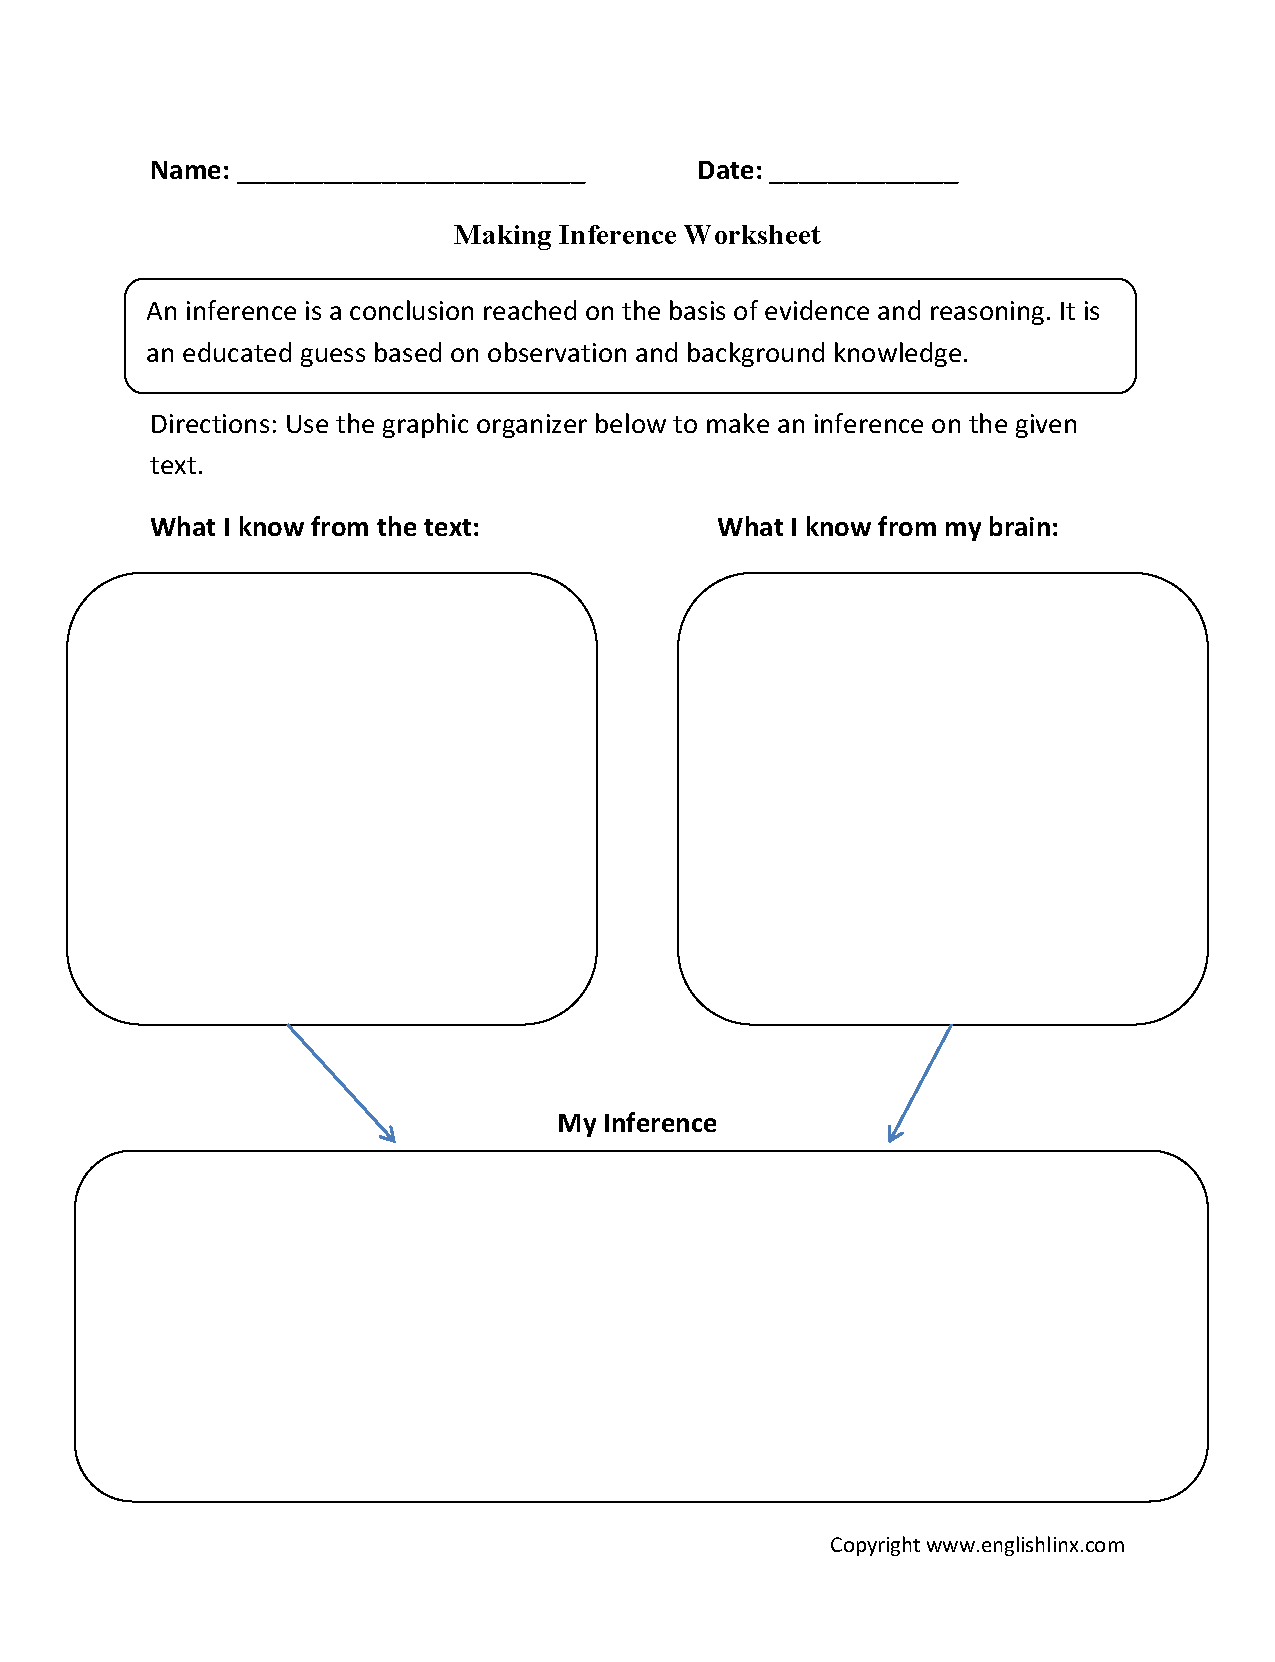 Making Inference Worksheet